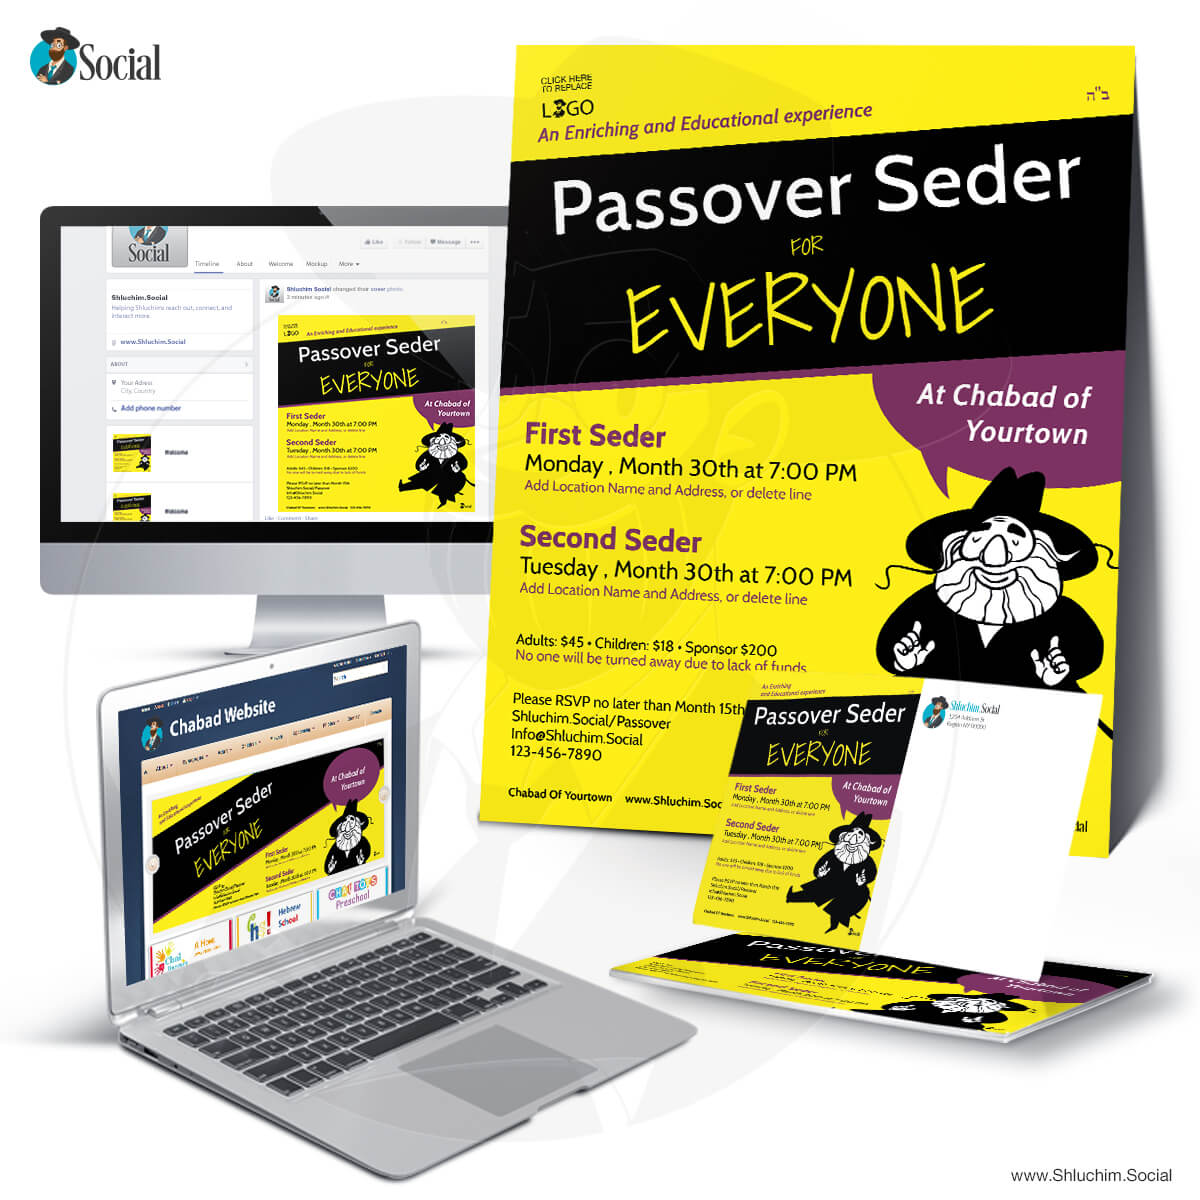 Passover Seder for Everyone